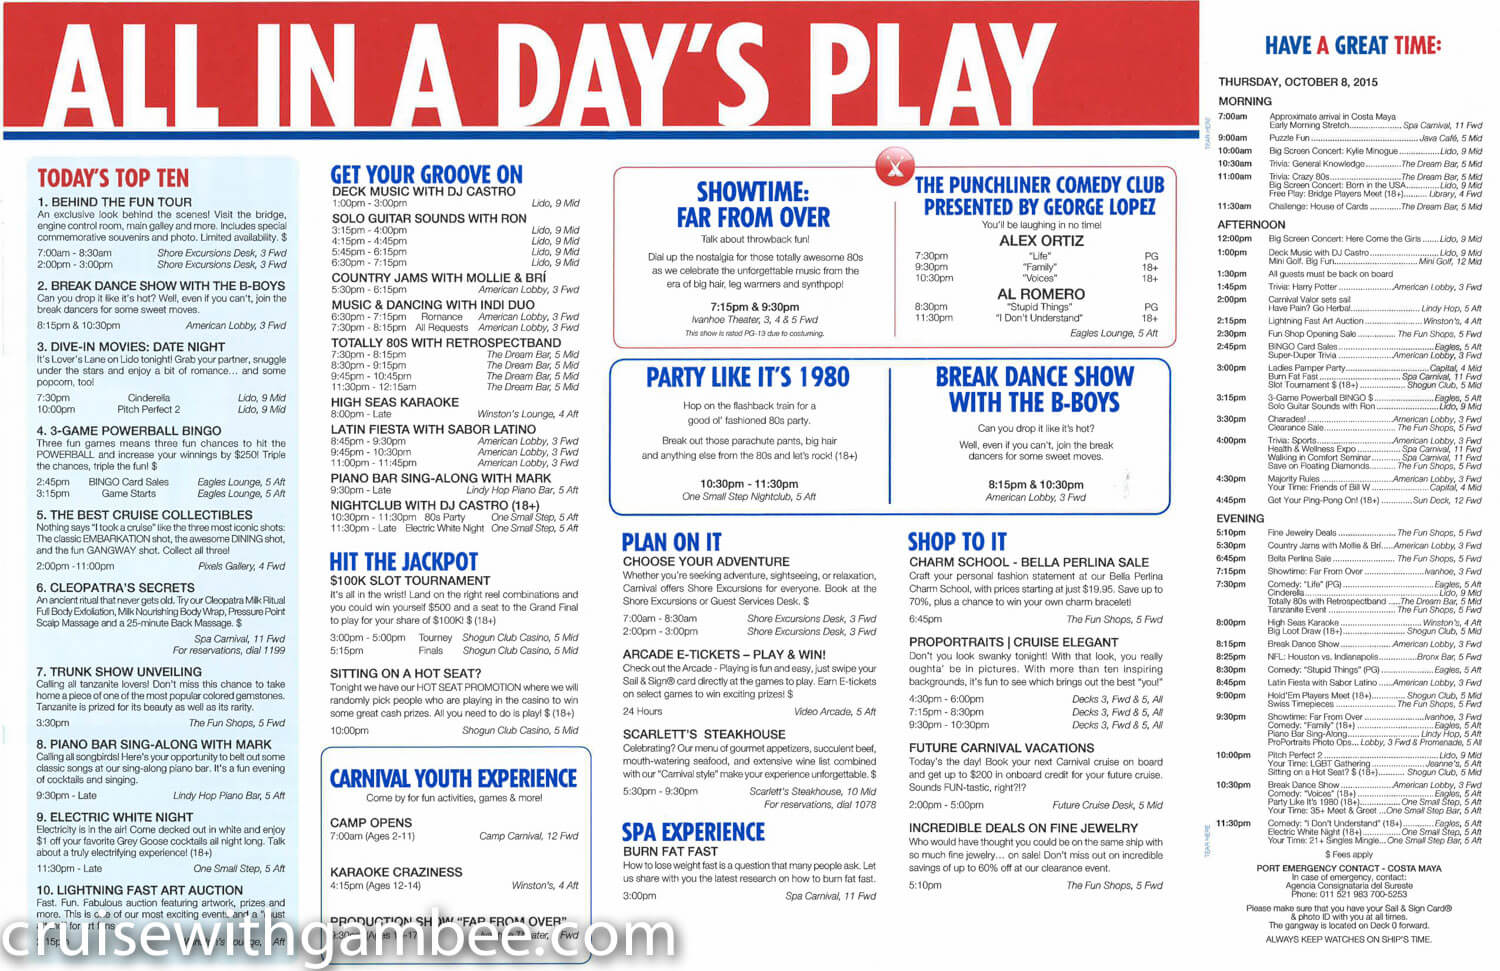 Carnival Valor Fun Times Daily paper-11